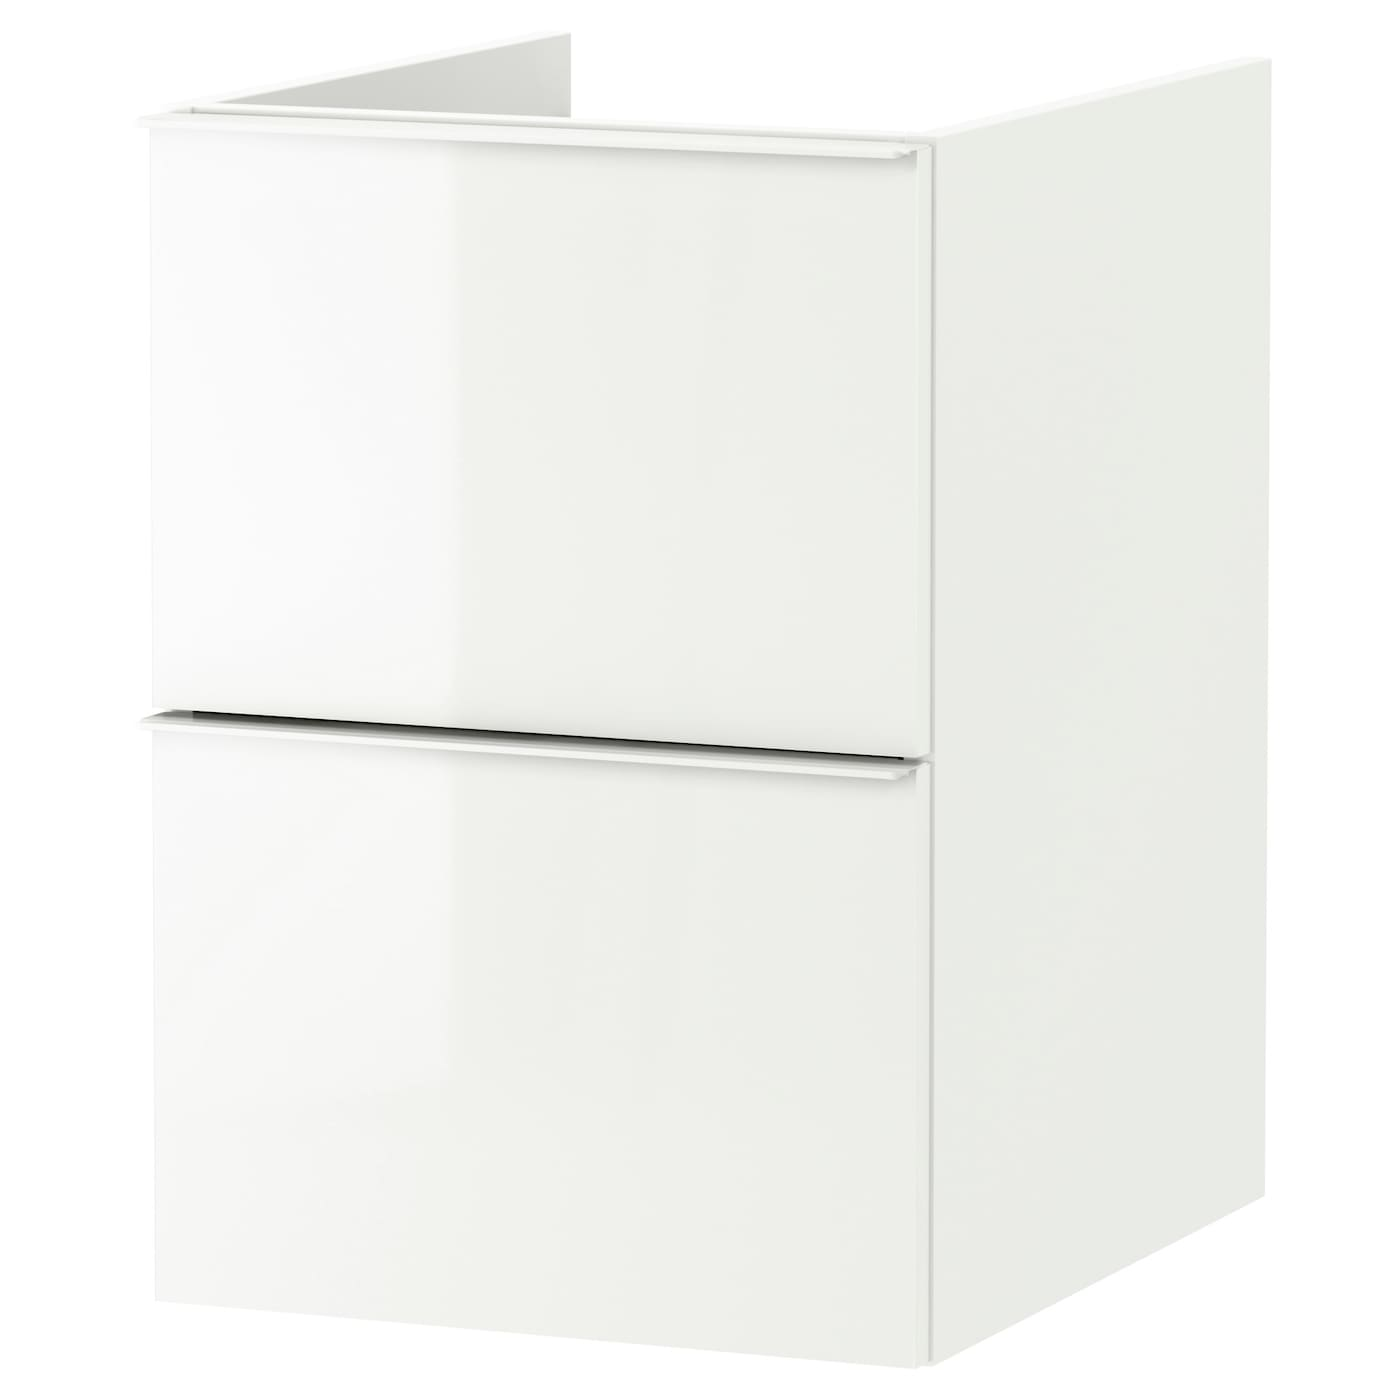 IKEA GODMORGON wash-stand with 2 drawers Smooth-running and soft-closing drawers with pull-out stop.